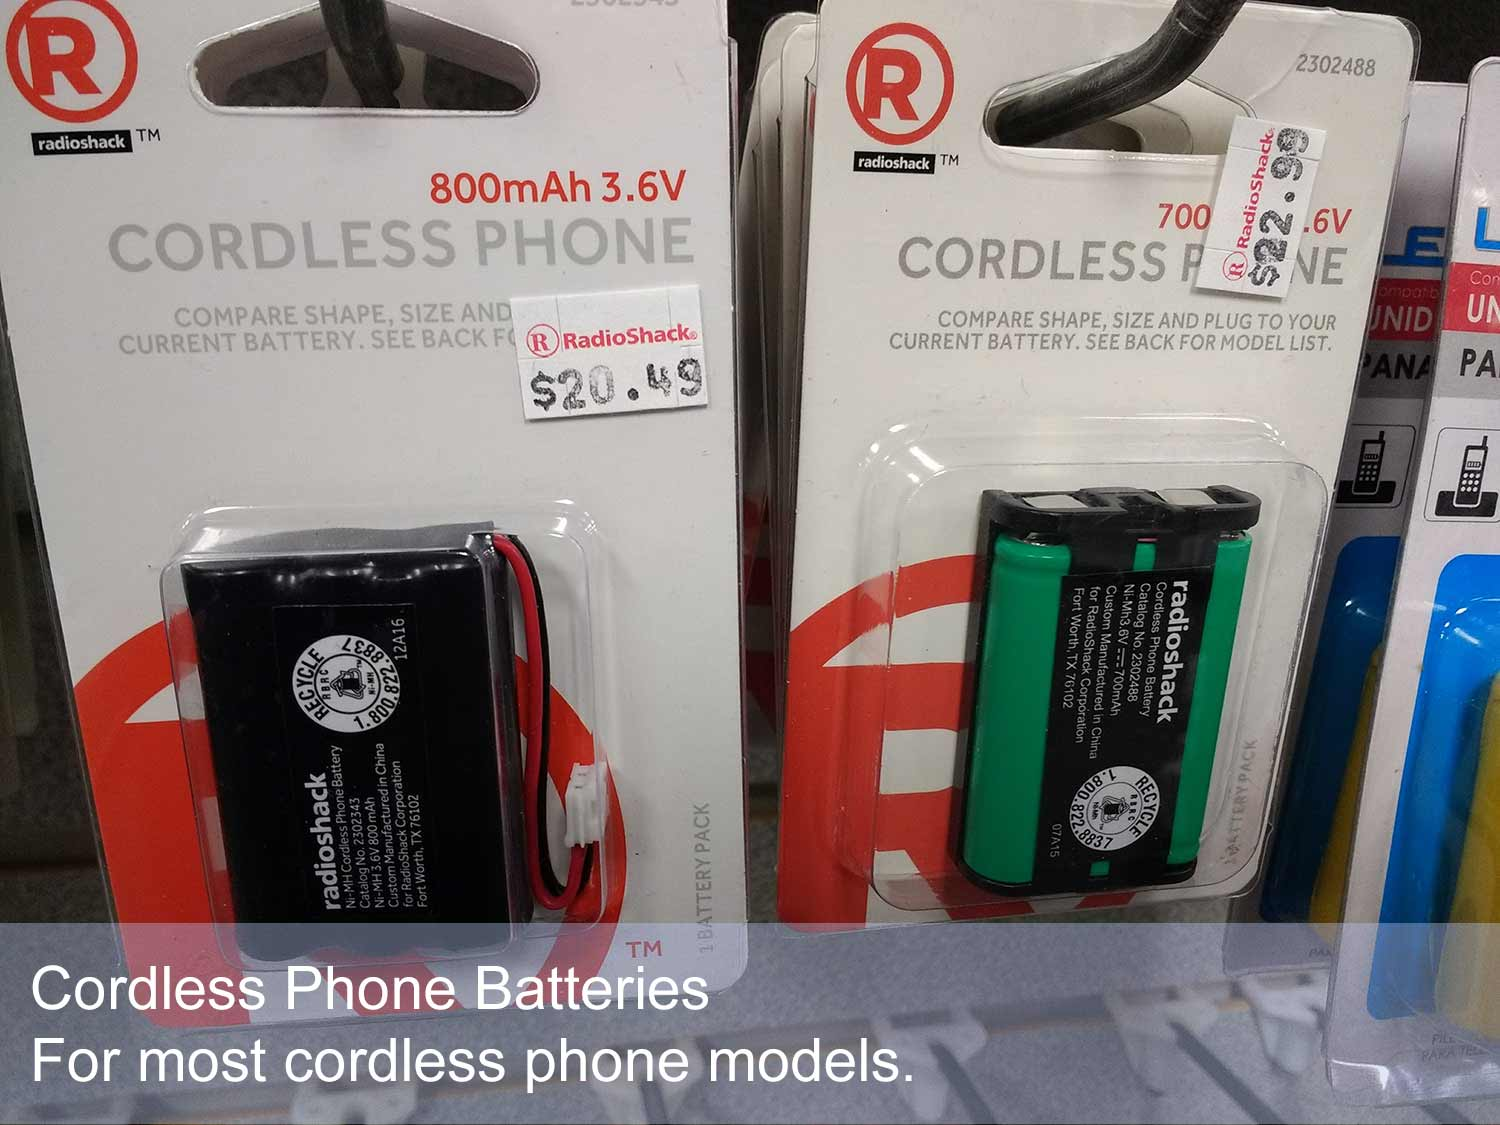 We specialize in batteries, including batteries for most cordless phones.